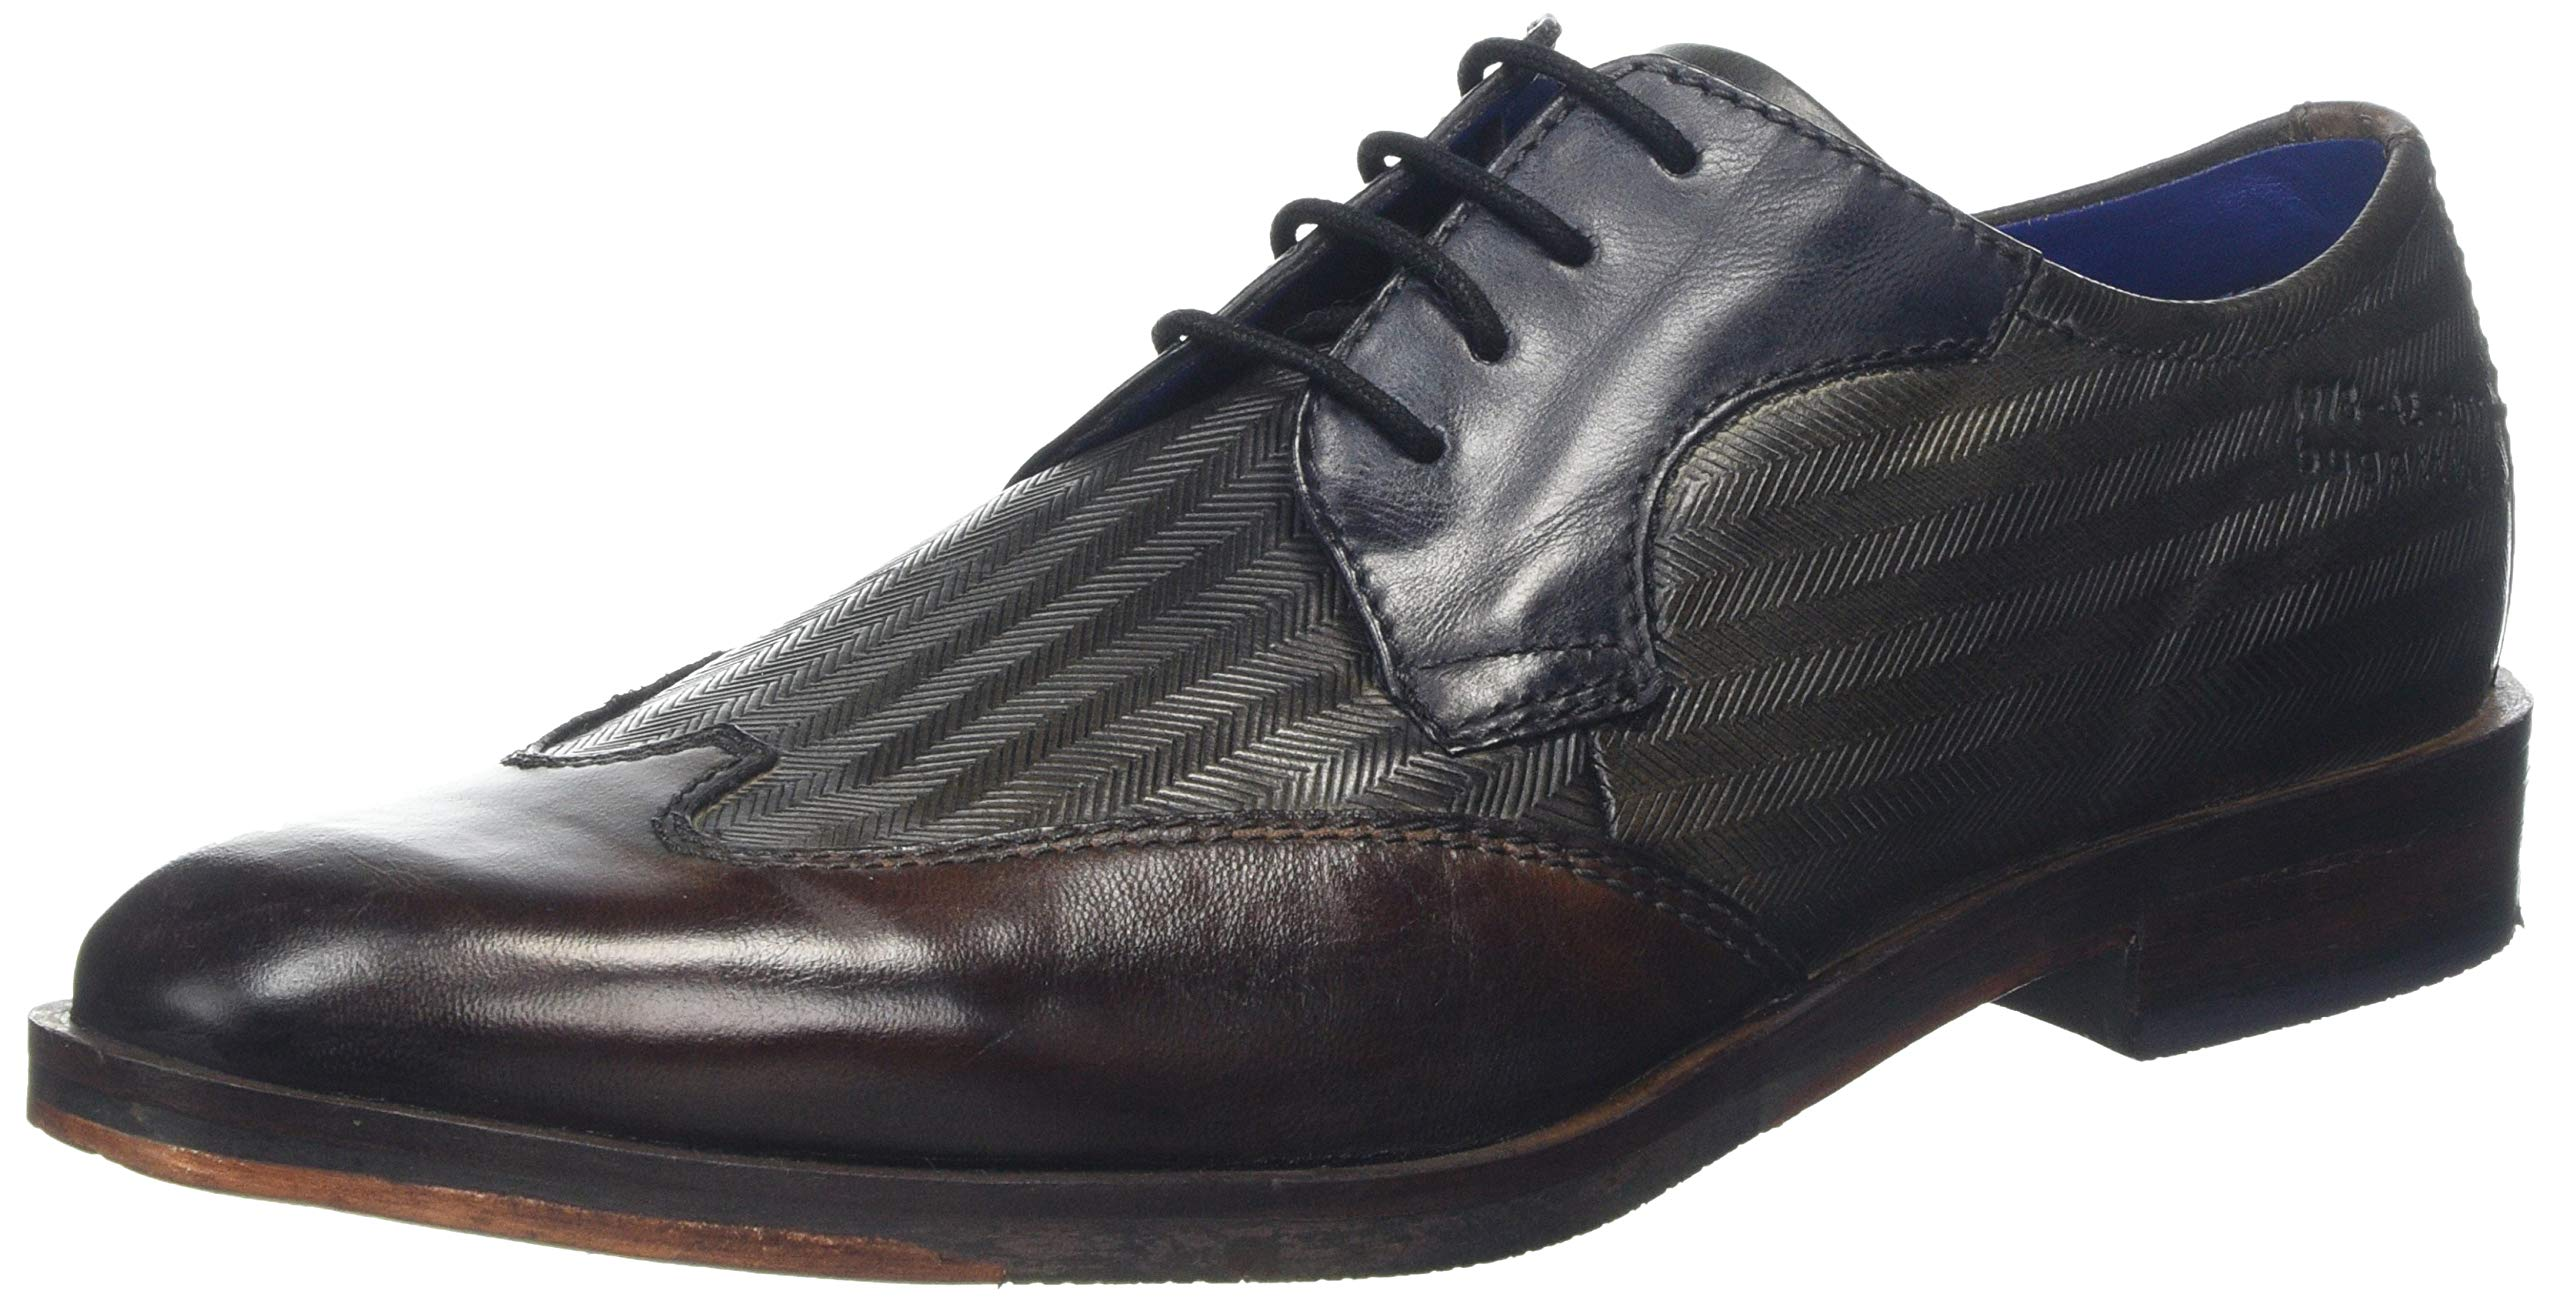 611144 311528113535Derbys Bugatti Eu HommeMarron Grey Brown dark 8mwNn0v